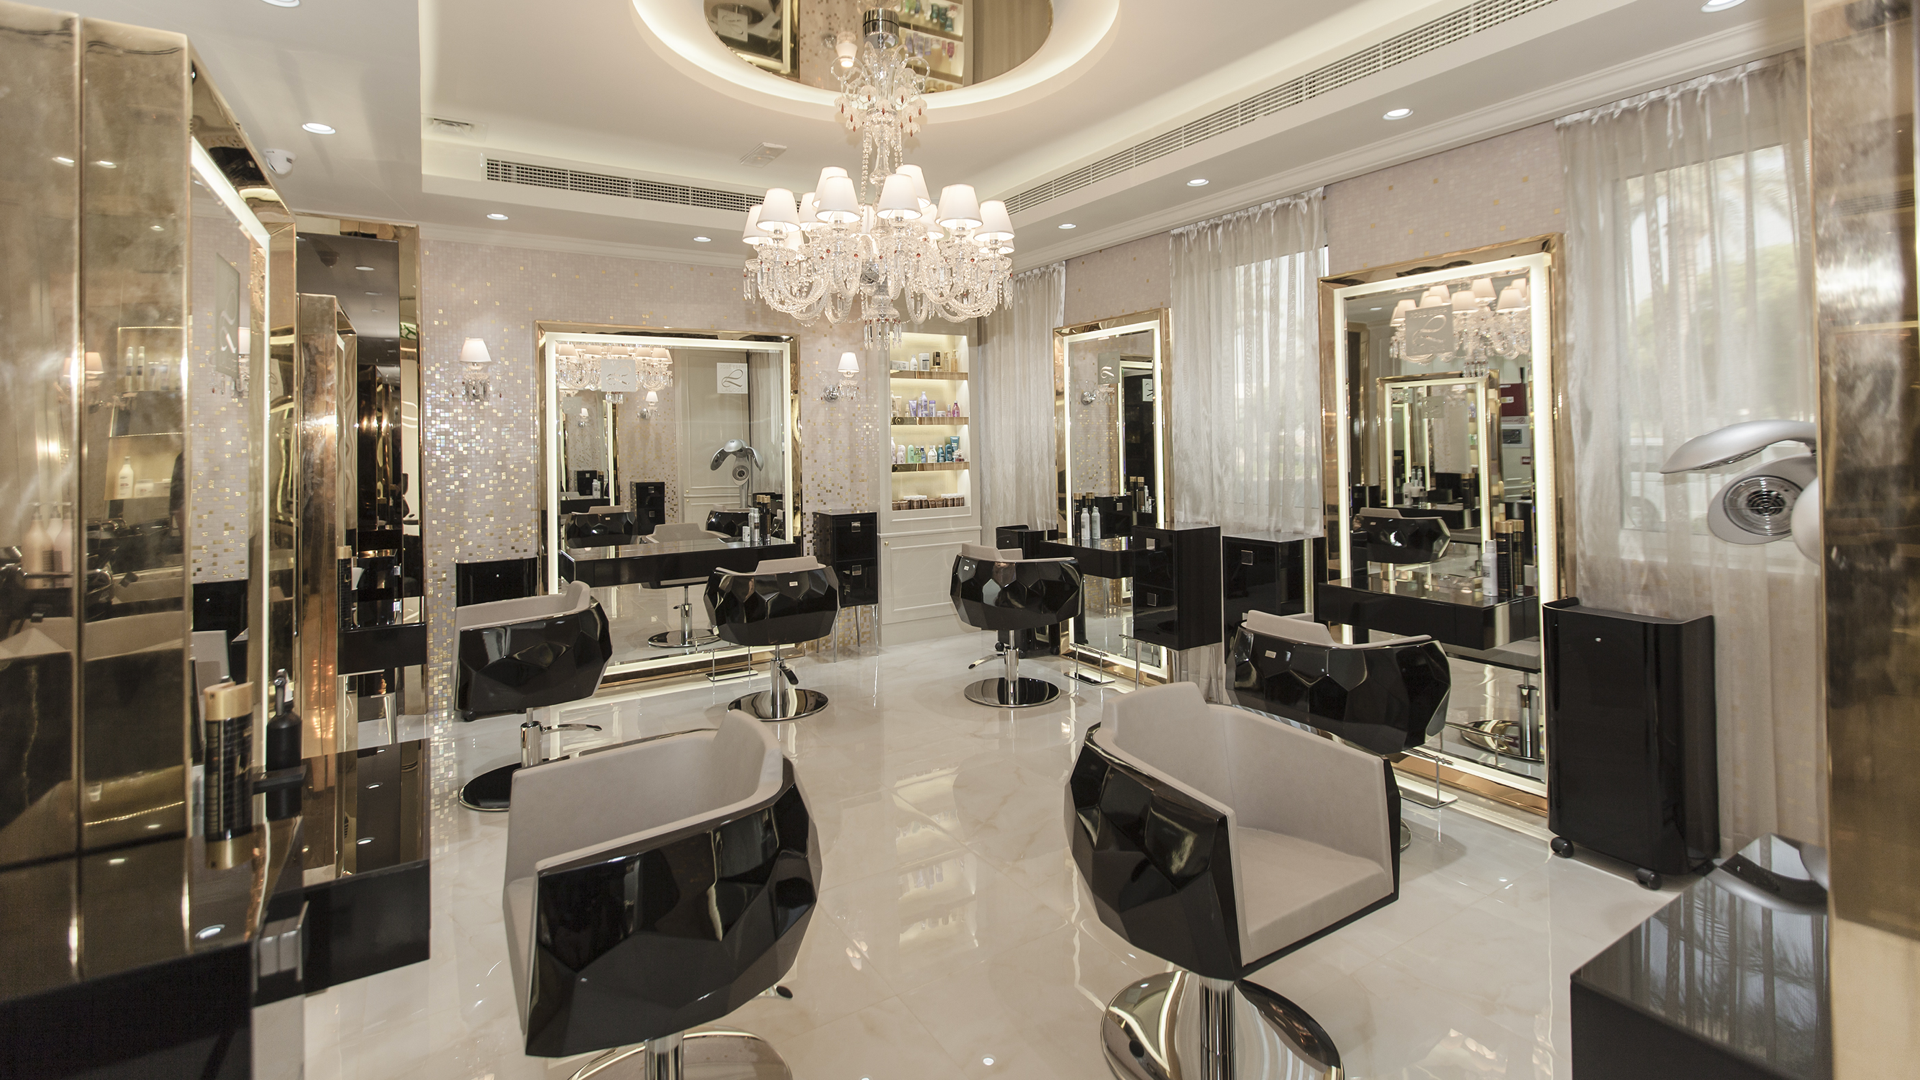 Beauty Salon Archives - Luxury Lifestyle Awards